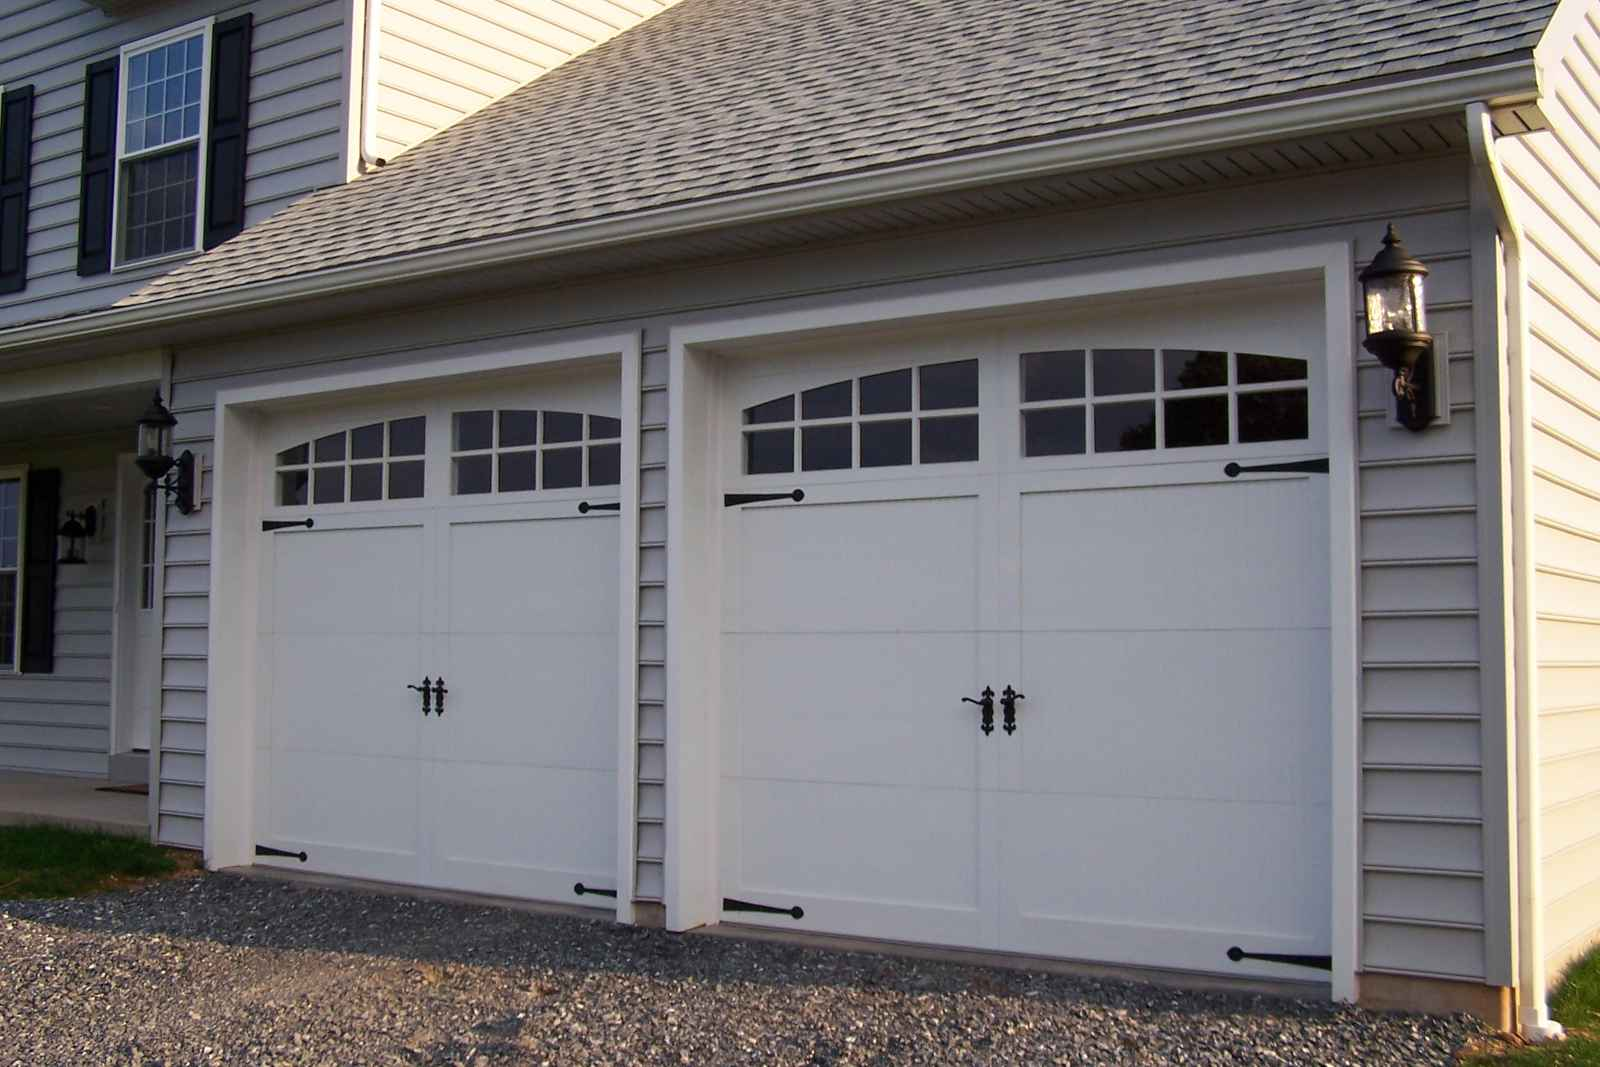 1067 #A98222 Garage Doors Hormann White Cheapest Garage Doors Sunrise Double Garage picture/photo Garages Doors 36391600